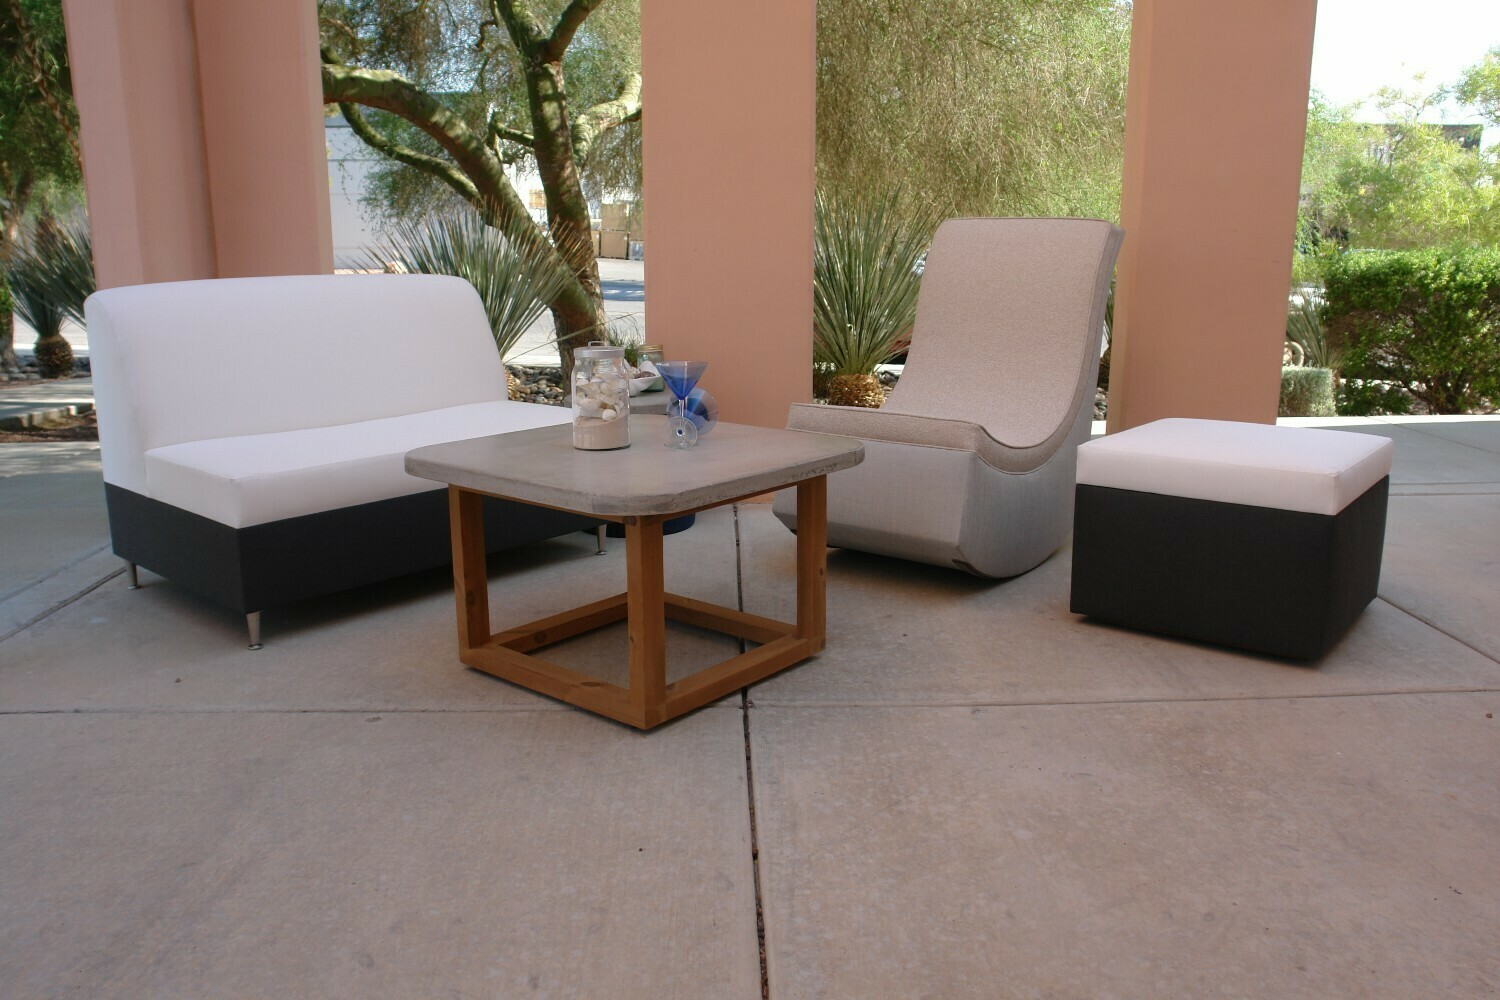 Resort Style 3 Piece Seating Set- 1 Loveseat and 2 Rocking Lounge Chairs